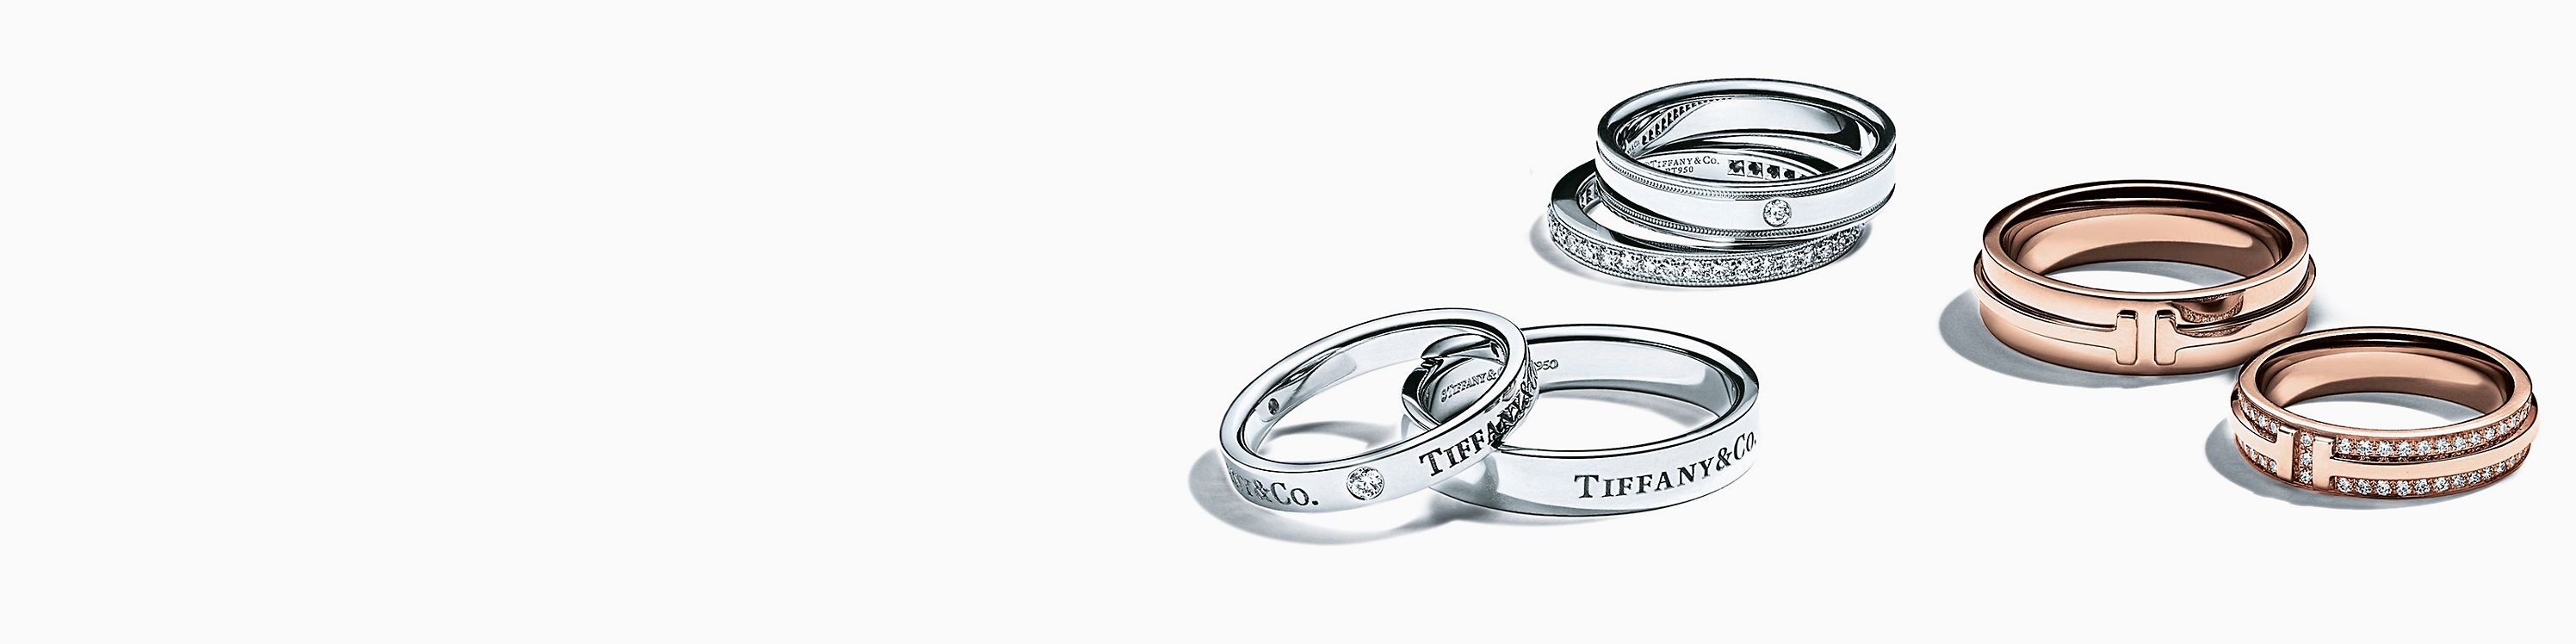 e54033ab94dc1 Wedding Band Sets | Tiffany & Co.